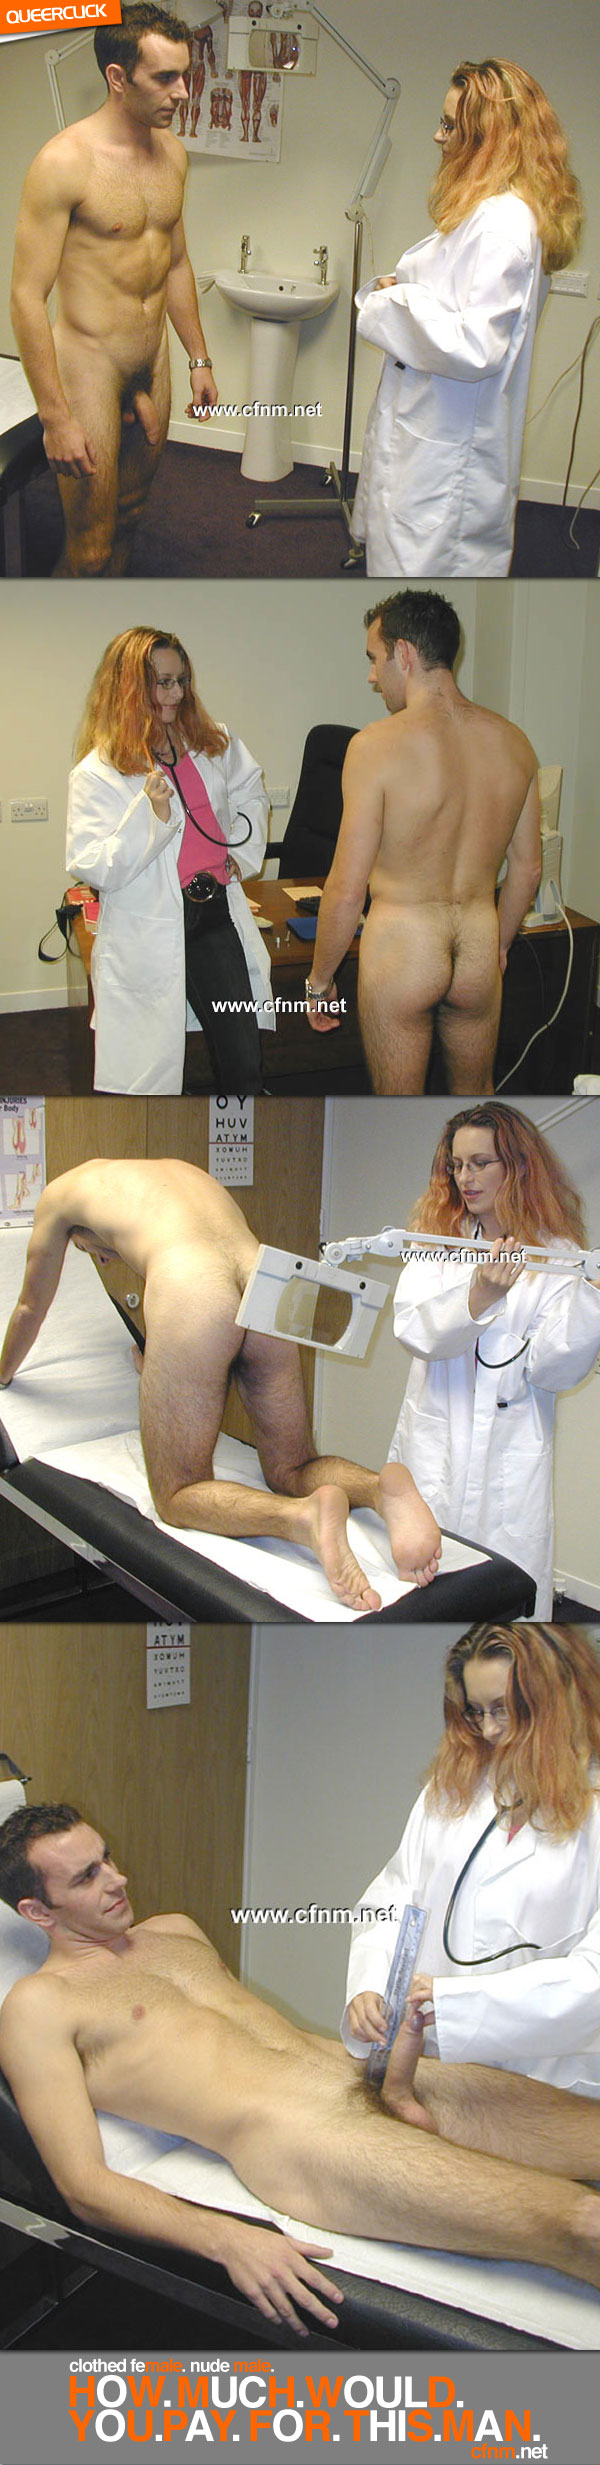 image Doctor exam jerk off cum shot and college